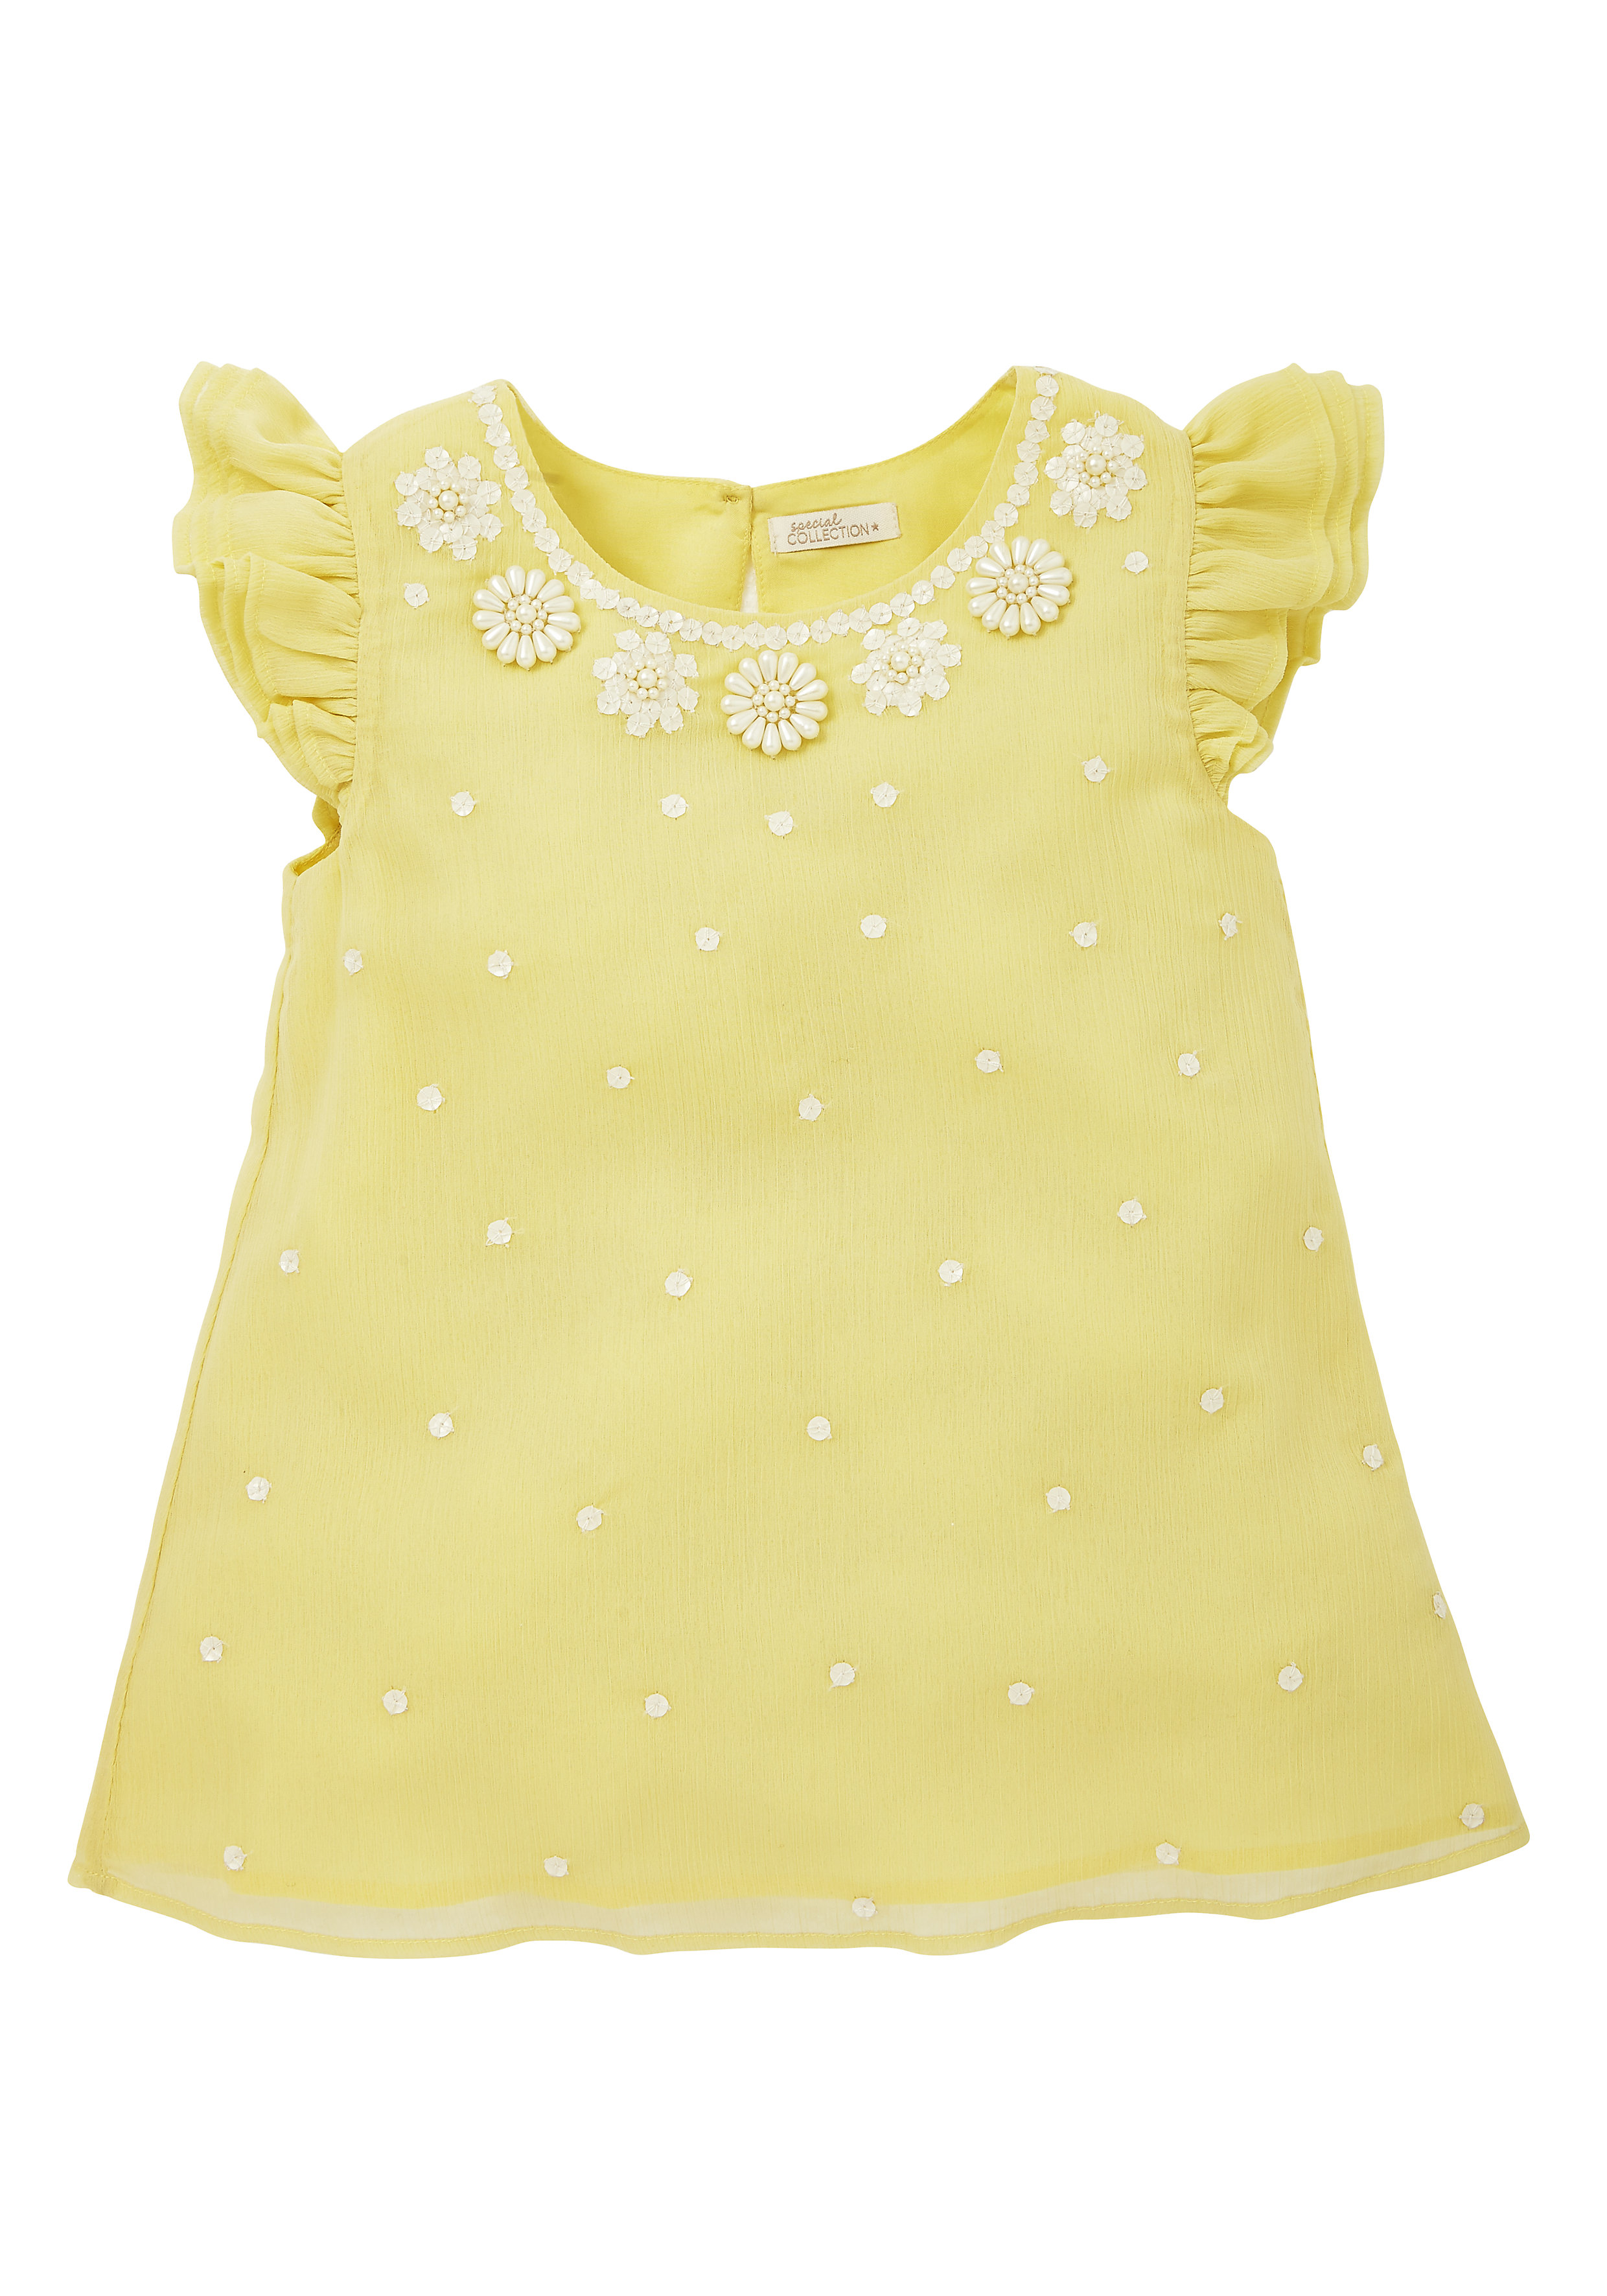 Mothercare | Girls Embellished Neck Blouse - Yellow